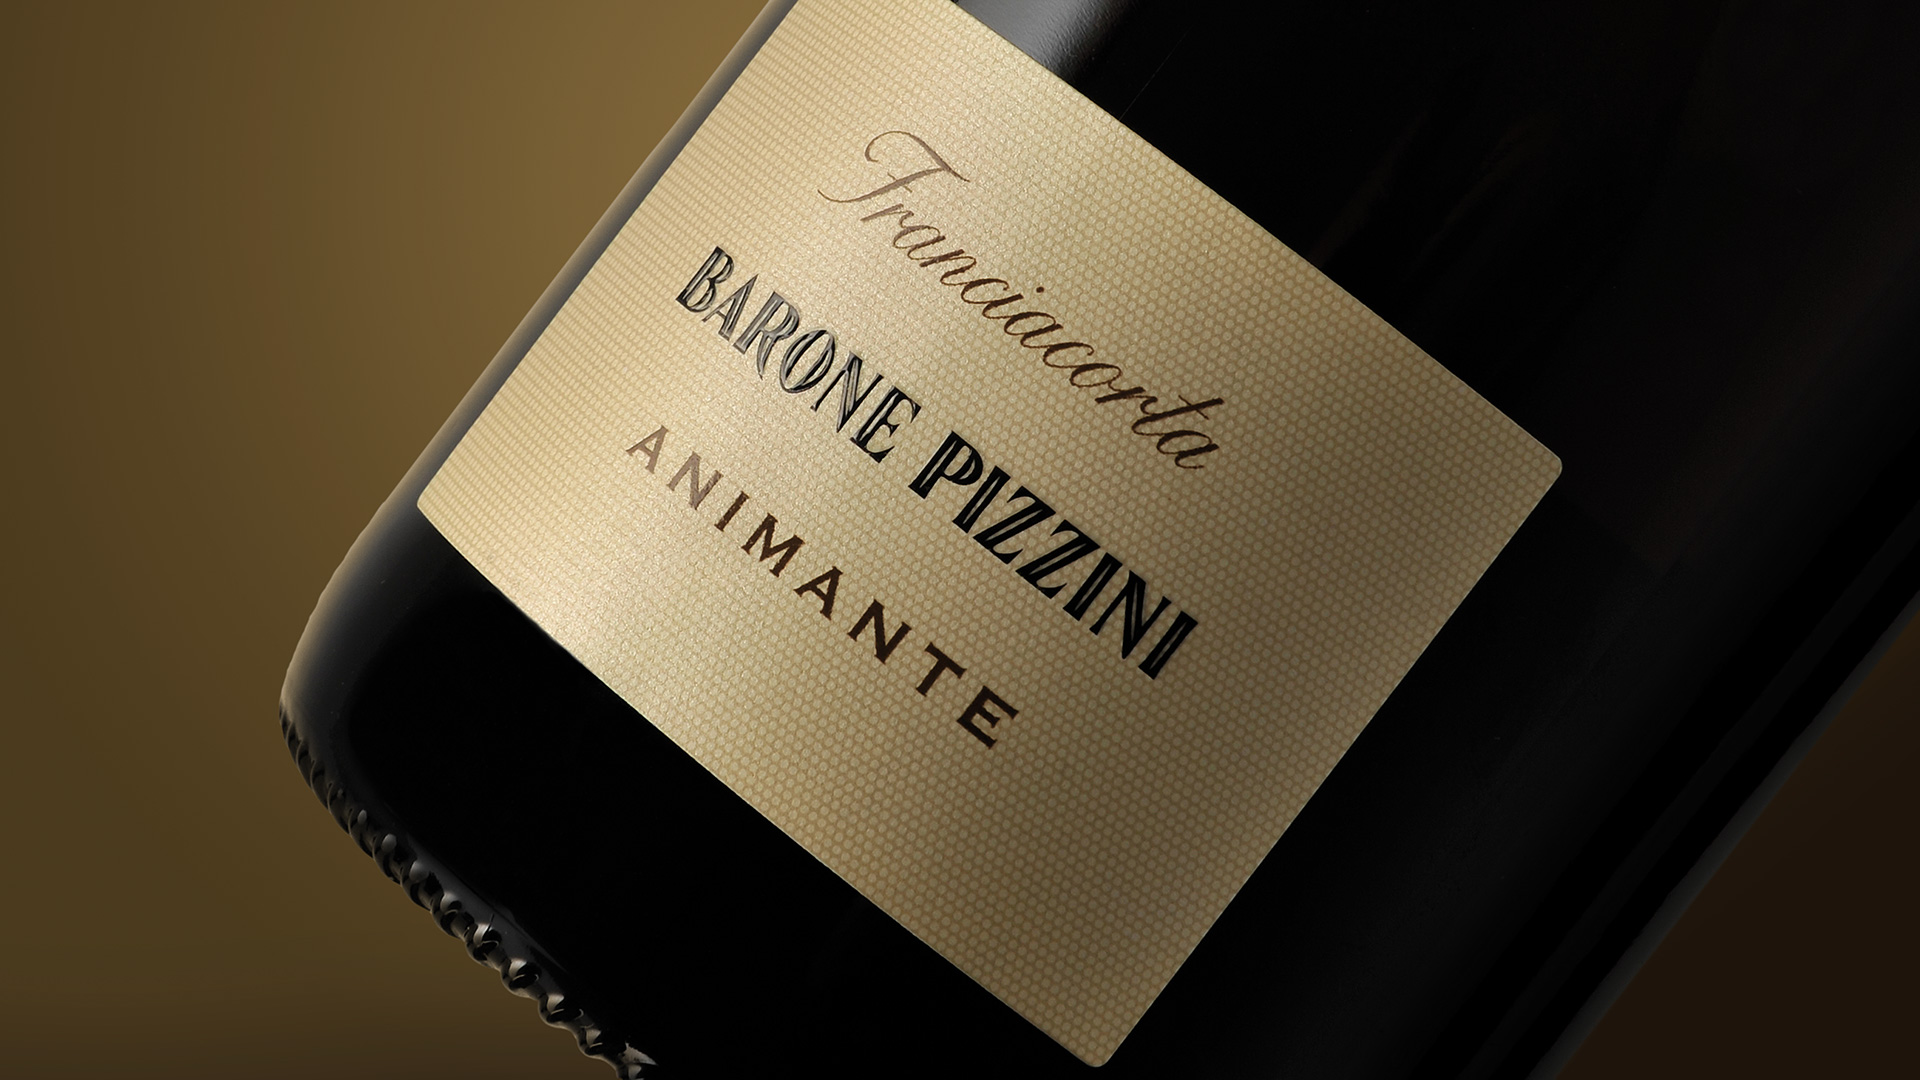 Barone Pizzini Animante restyling close up